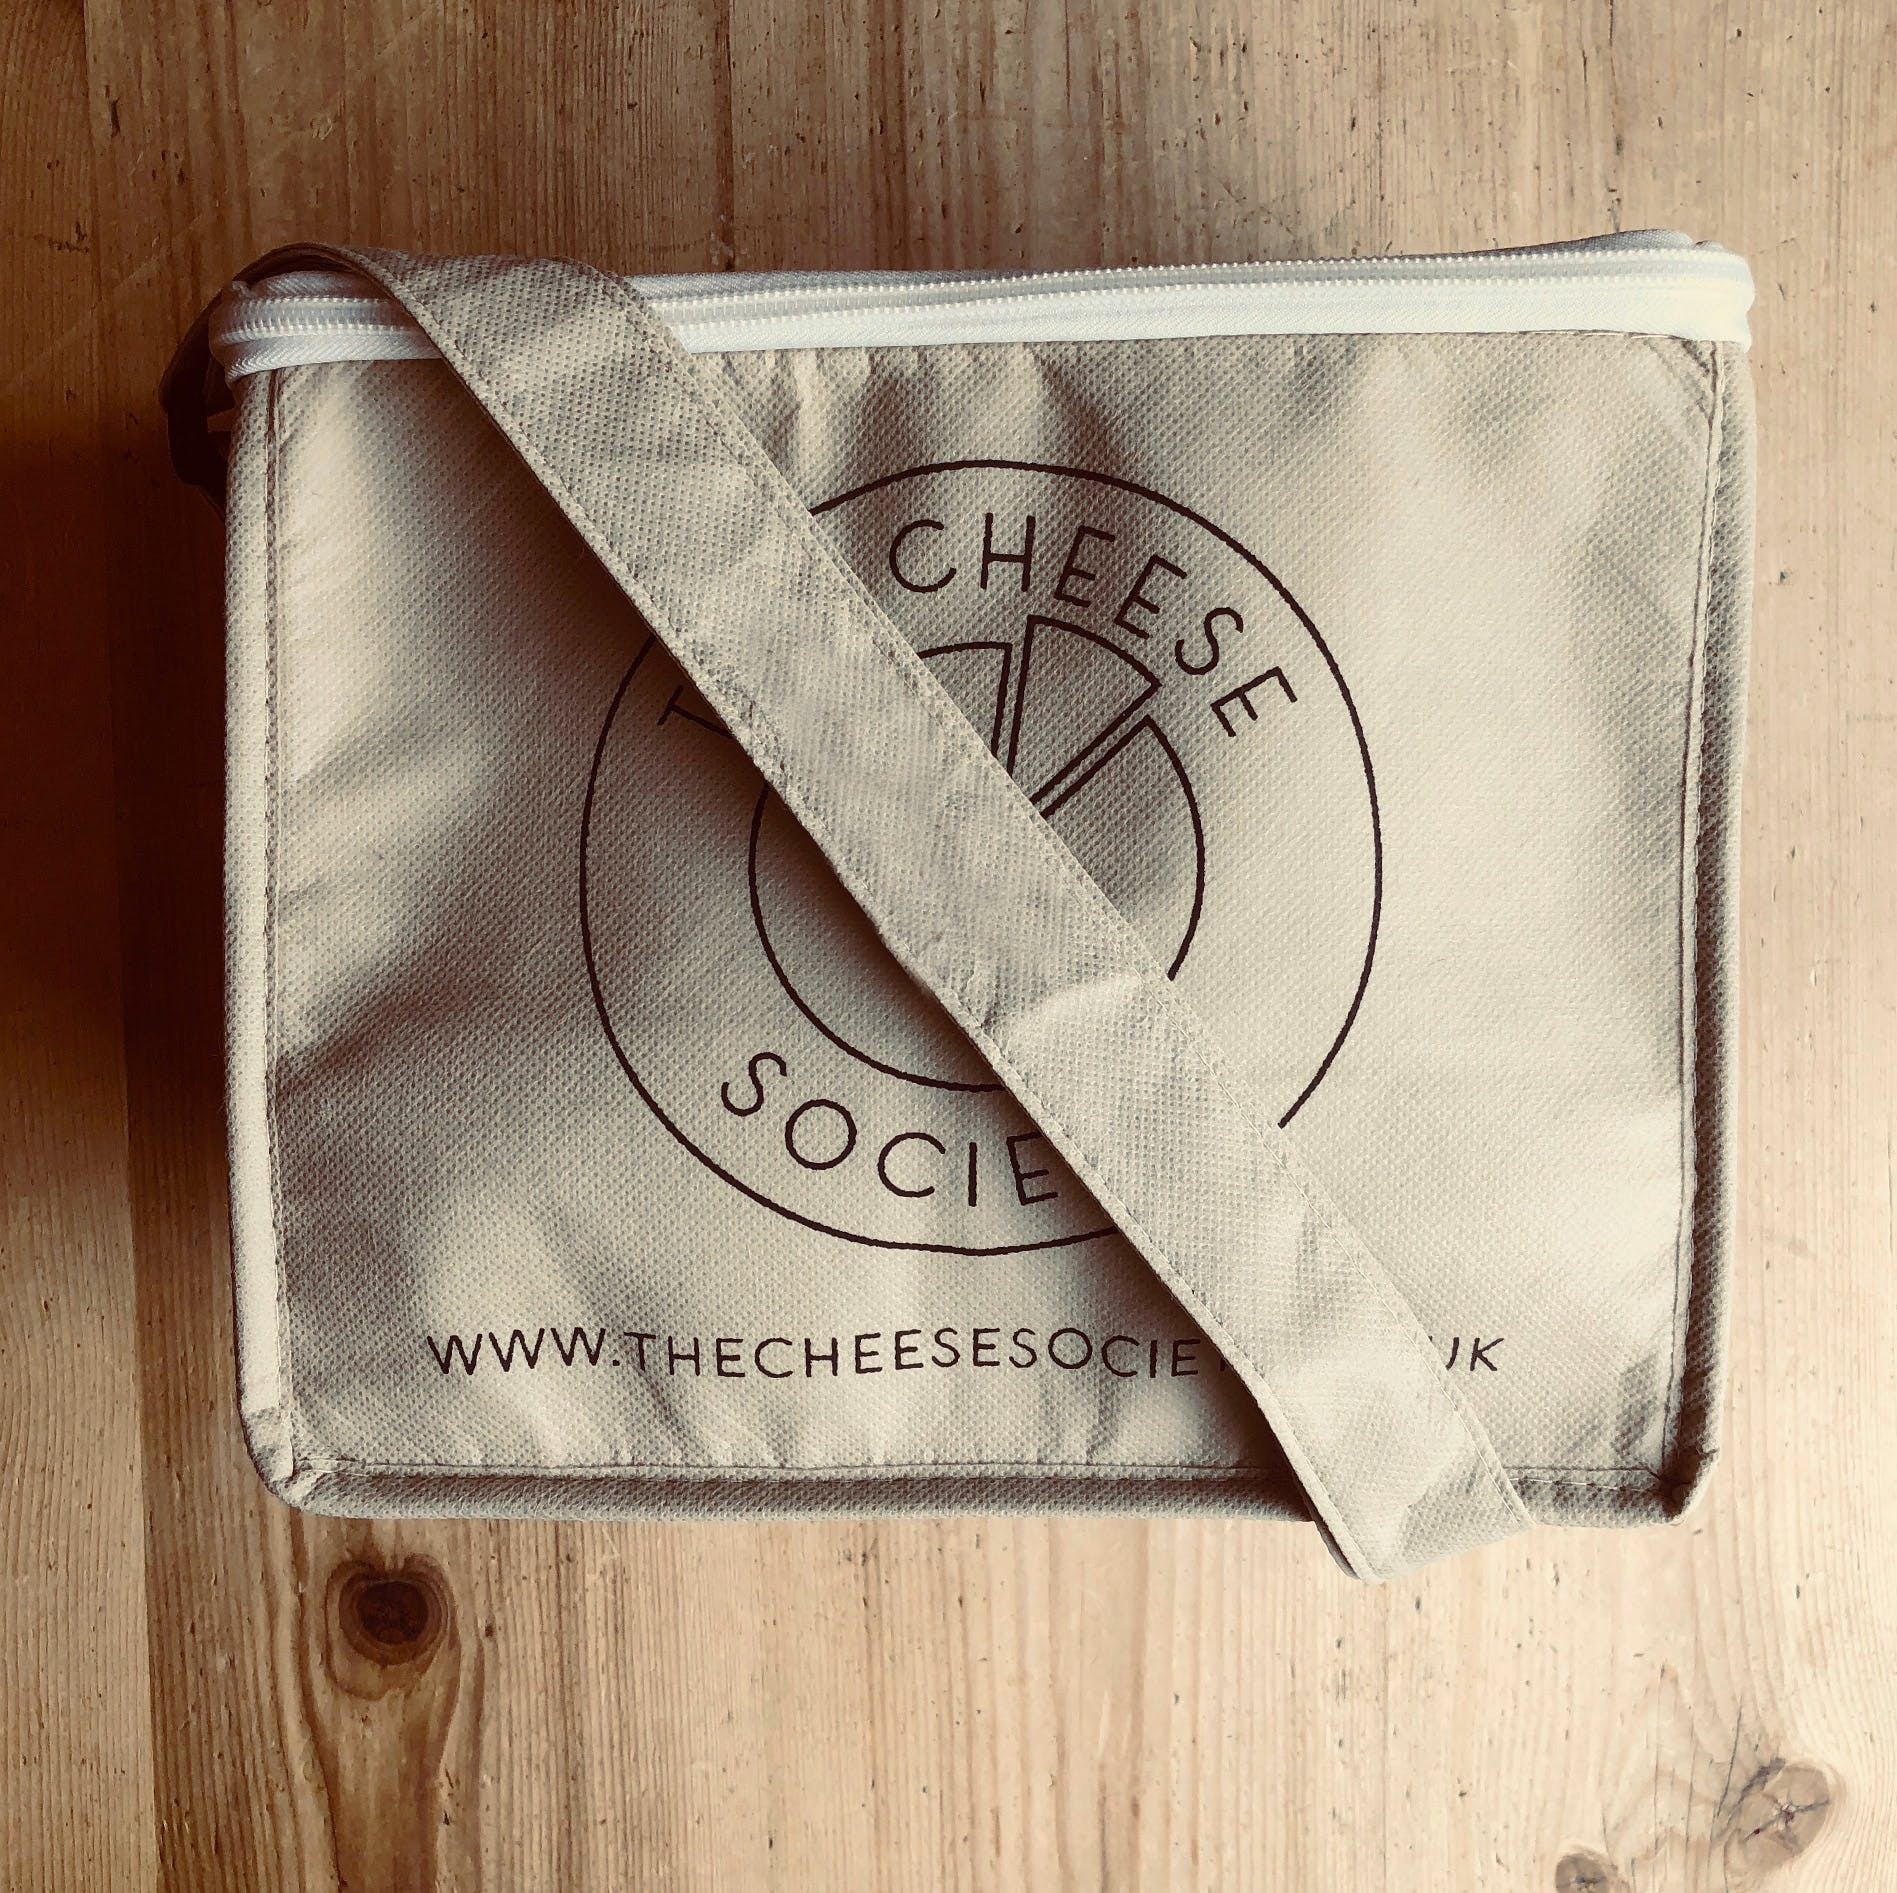 Cheese Society Cool Bag